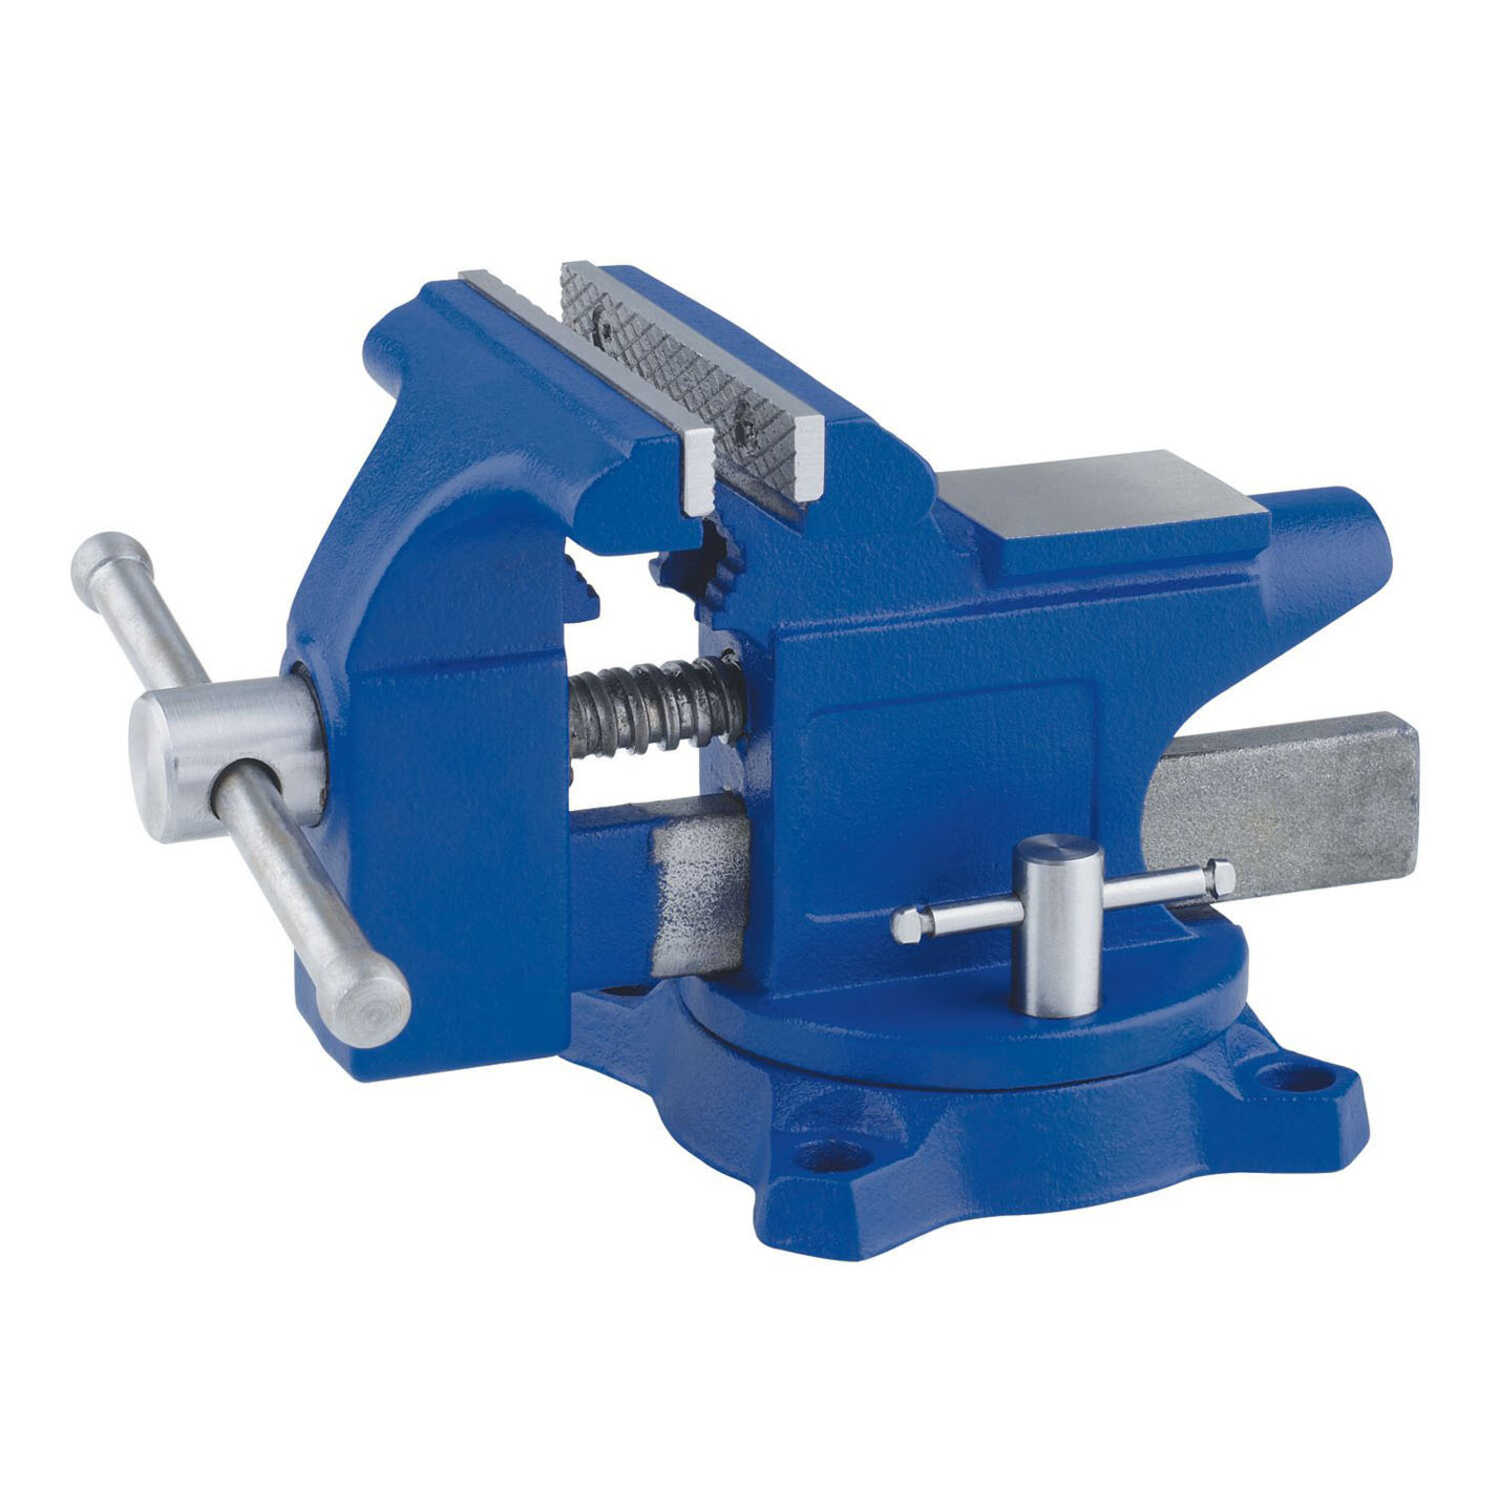 Irwin  4.5 in. Steel  Workshop Bench Vise  Swivel Base